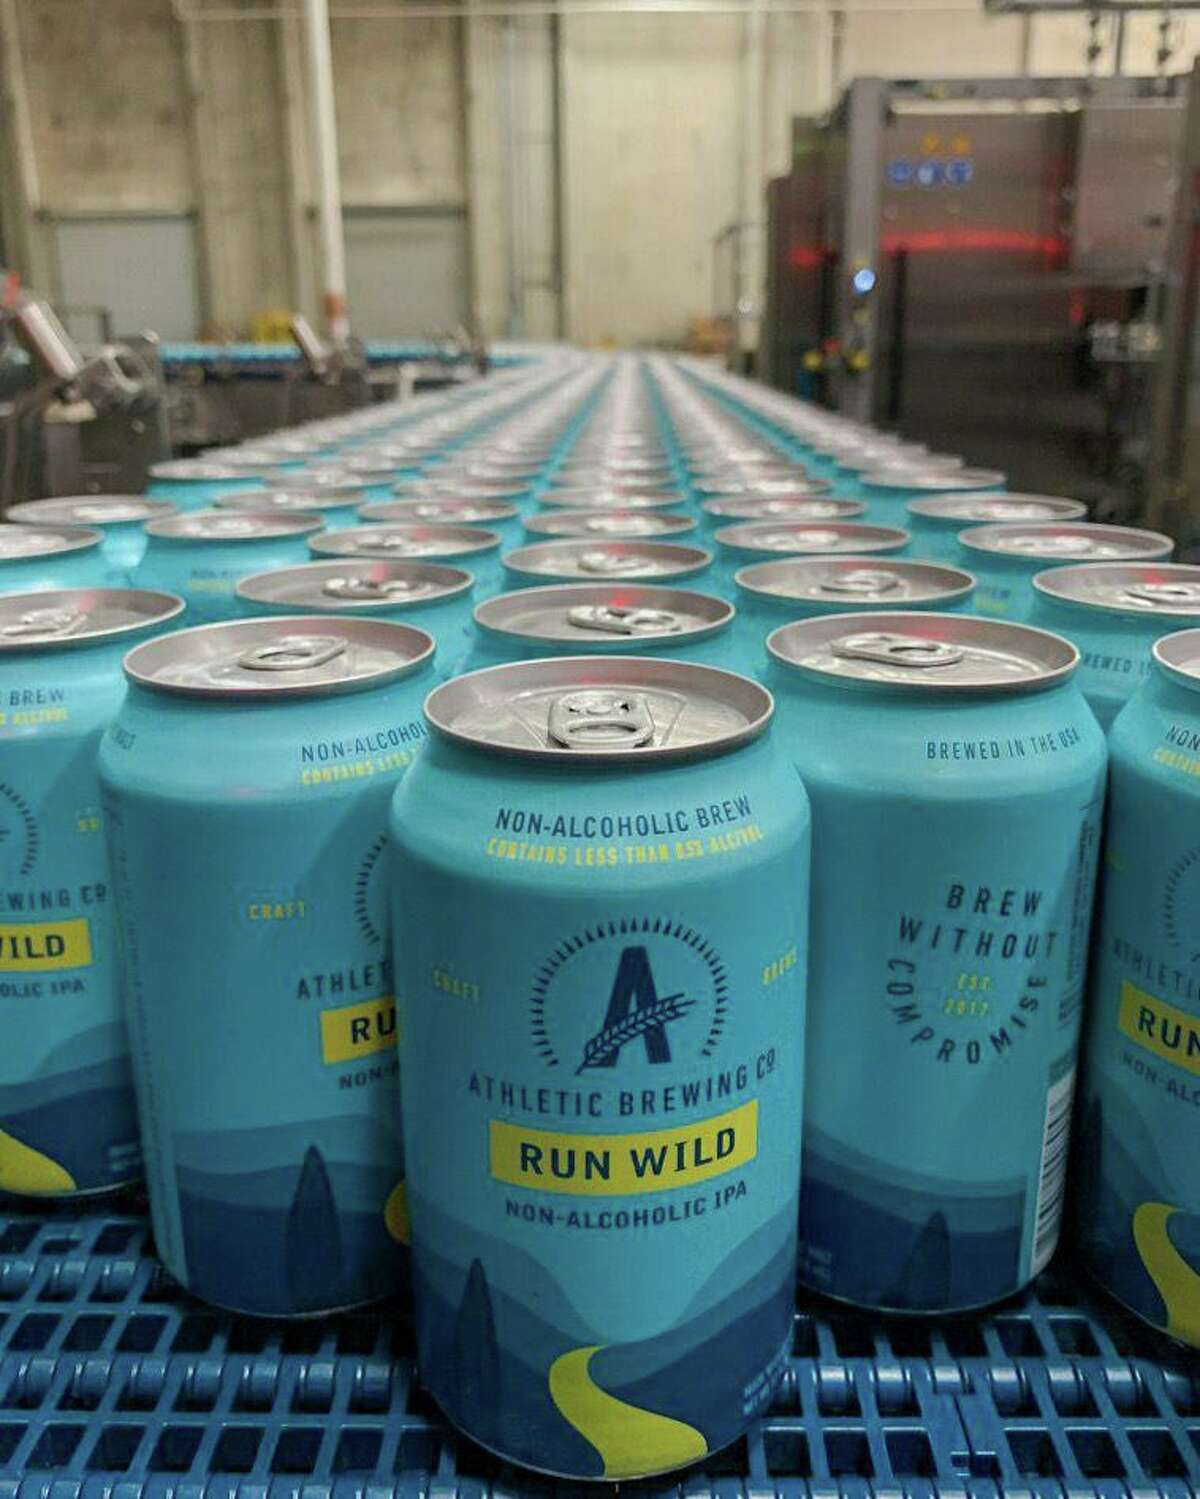 Athletic Brewing Company, based in Stratford, is Connecticut's only nonalcoholic brewery. Bill Shufelt, the co-founder of Athletic Brewing Company, the only nonalcoholic brewery in Connecticut, said he created his company because he wanted an alternative to alcoholic beverages when he was having a night out.